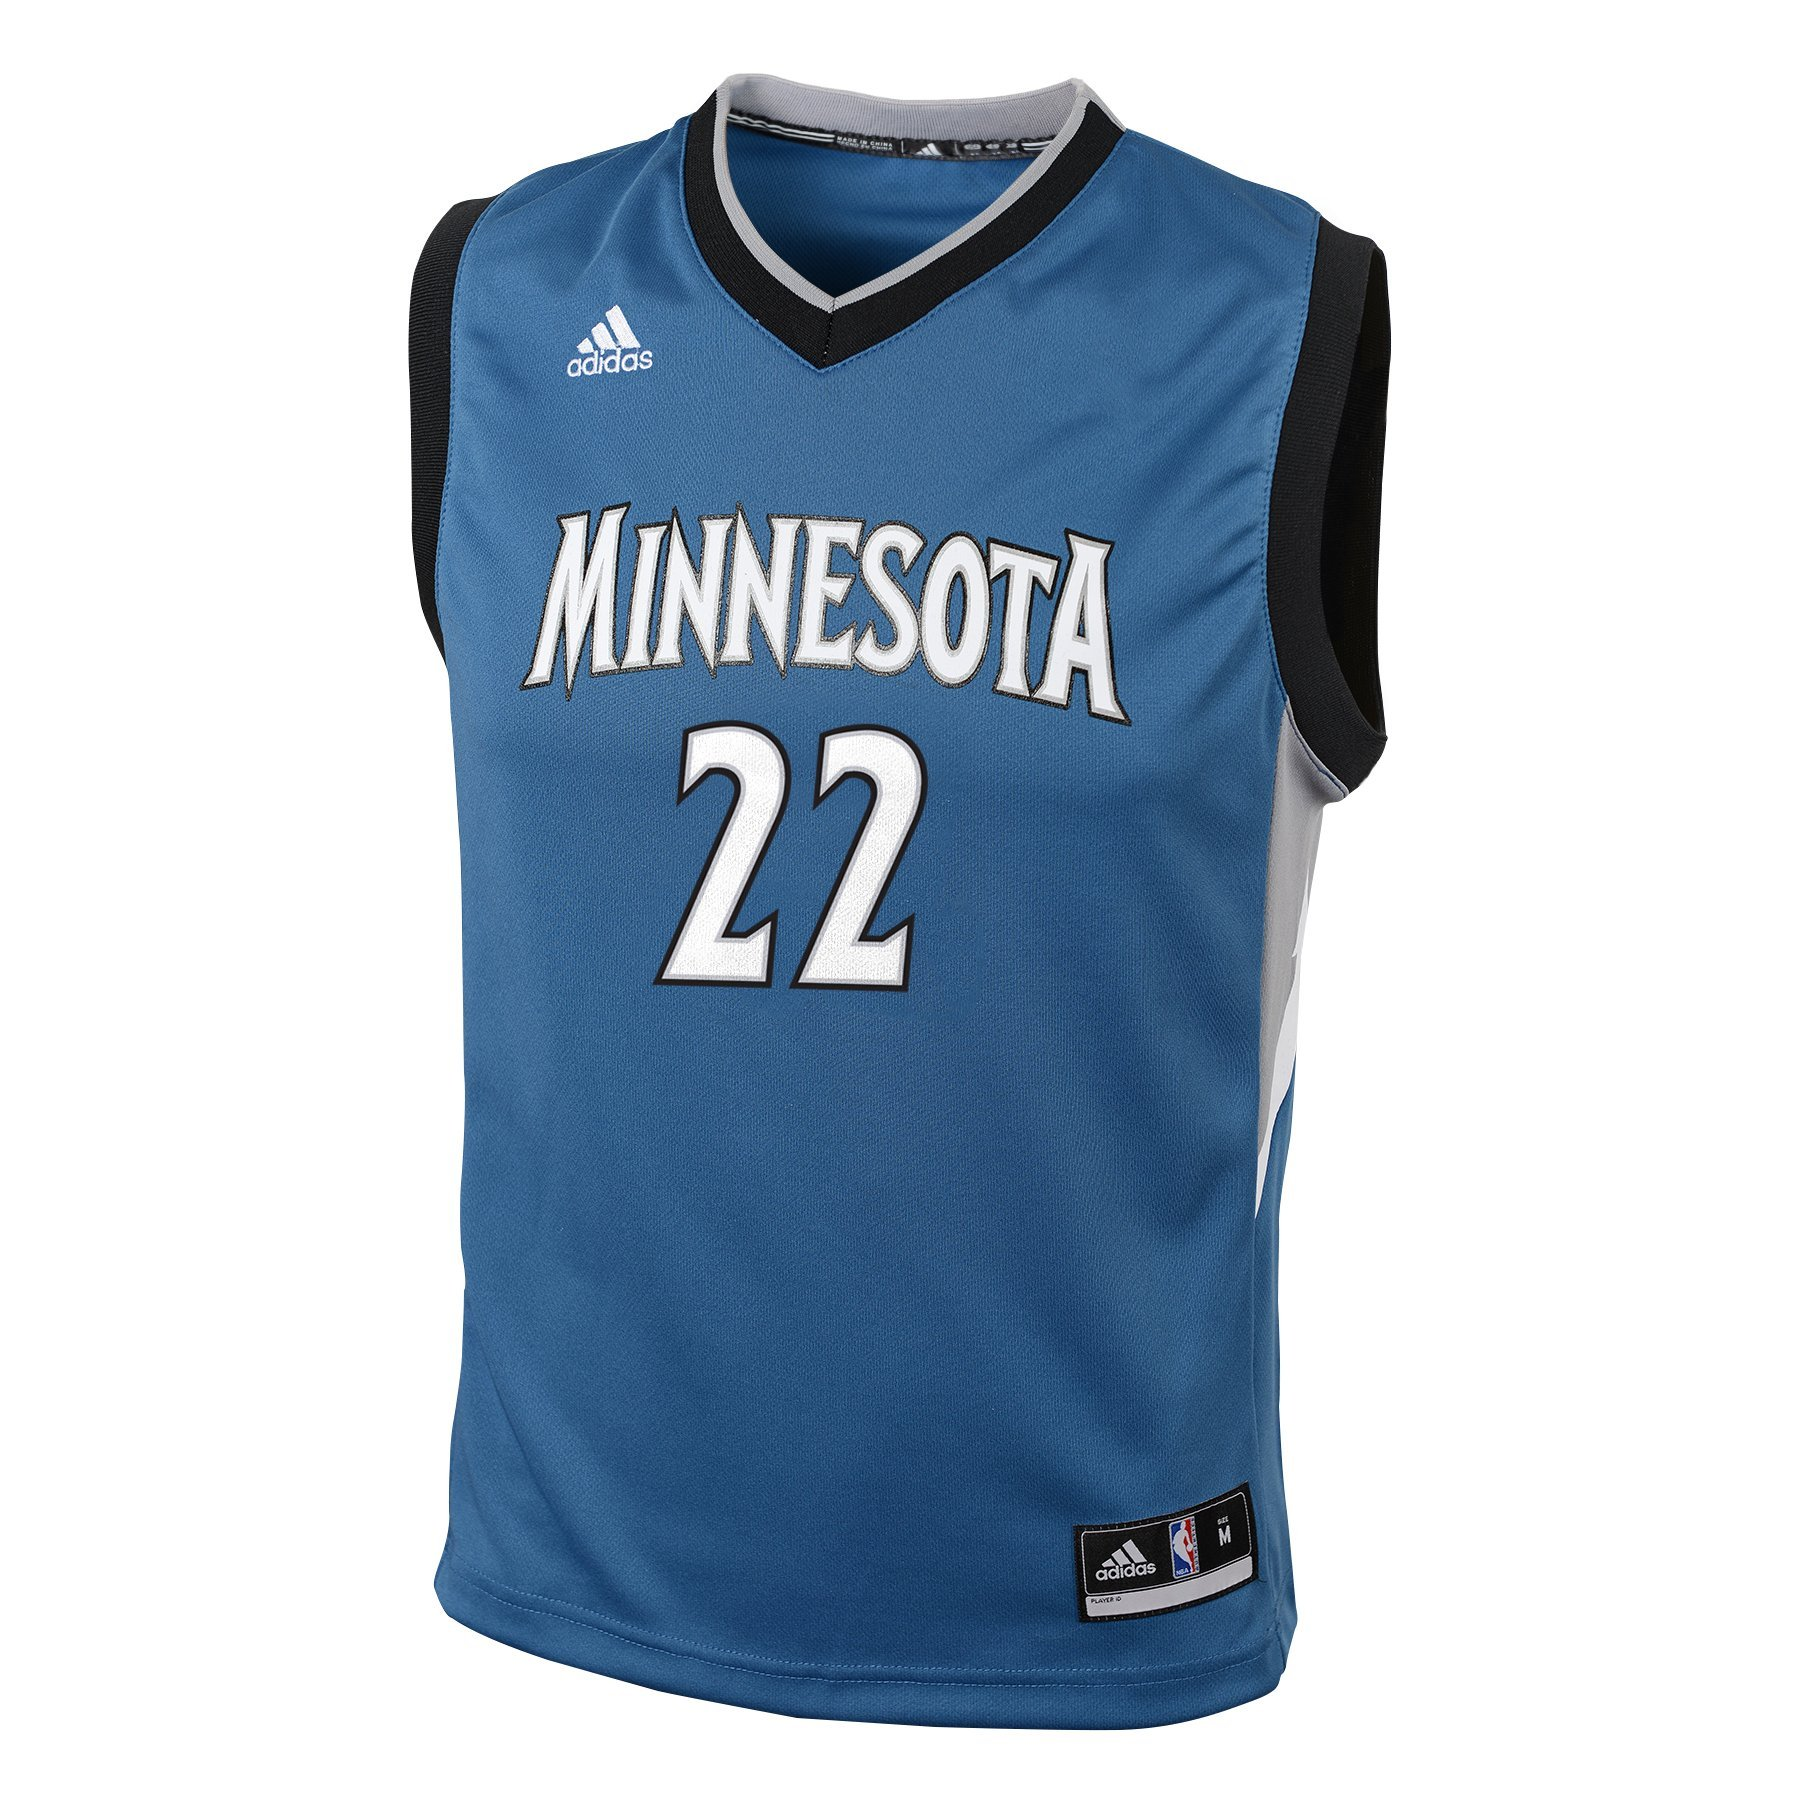 Andrew Wiggins Minnesota Timberwolves Adidas NBA Replica Youth Gioventù Jersey Maglia